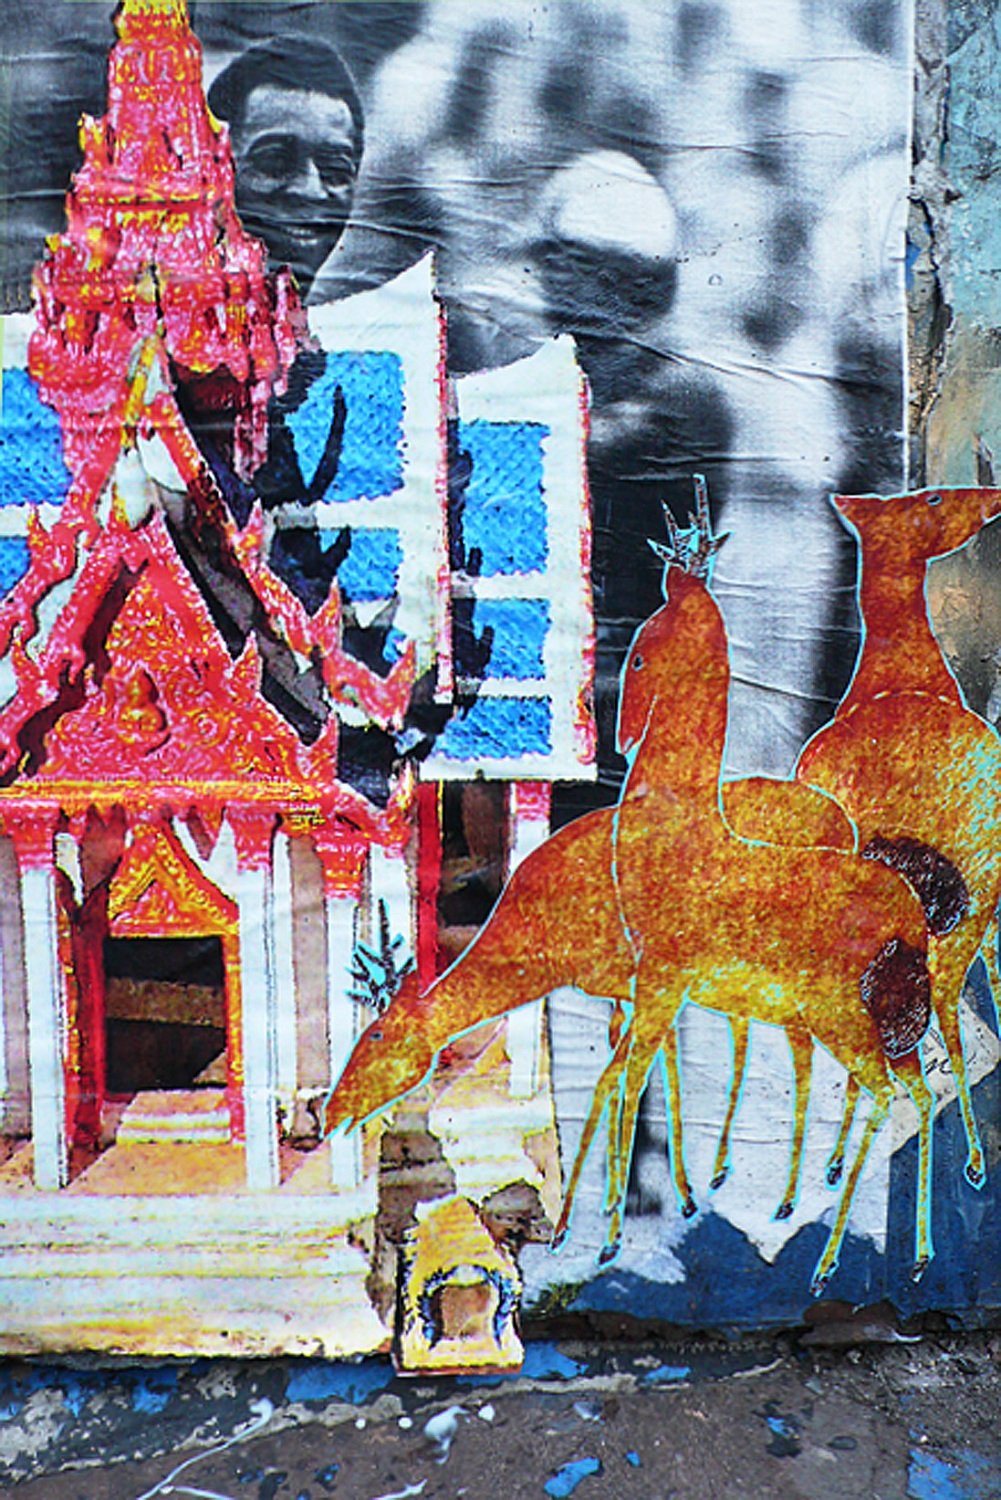 ShinShin-Street-Art-Temple-Tiny-Deer-detail.jpg